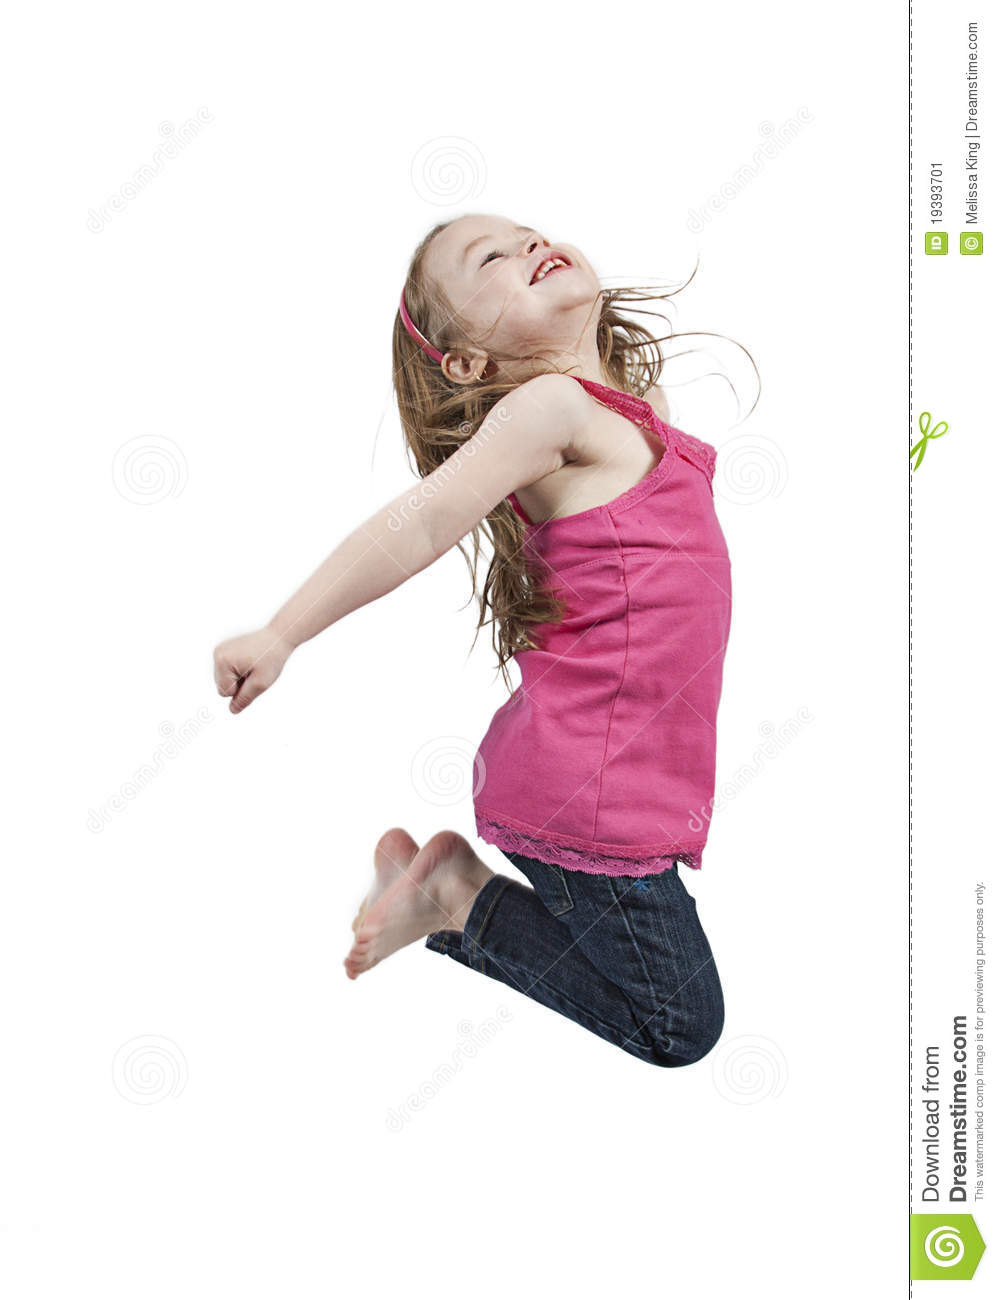 Cute young girl jumping in air white studio background